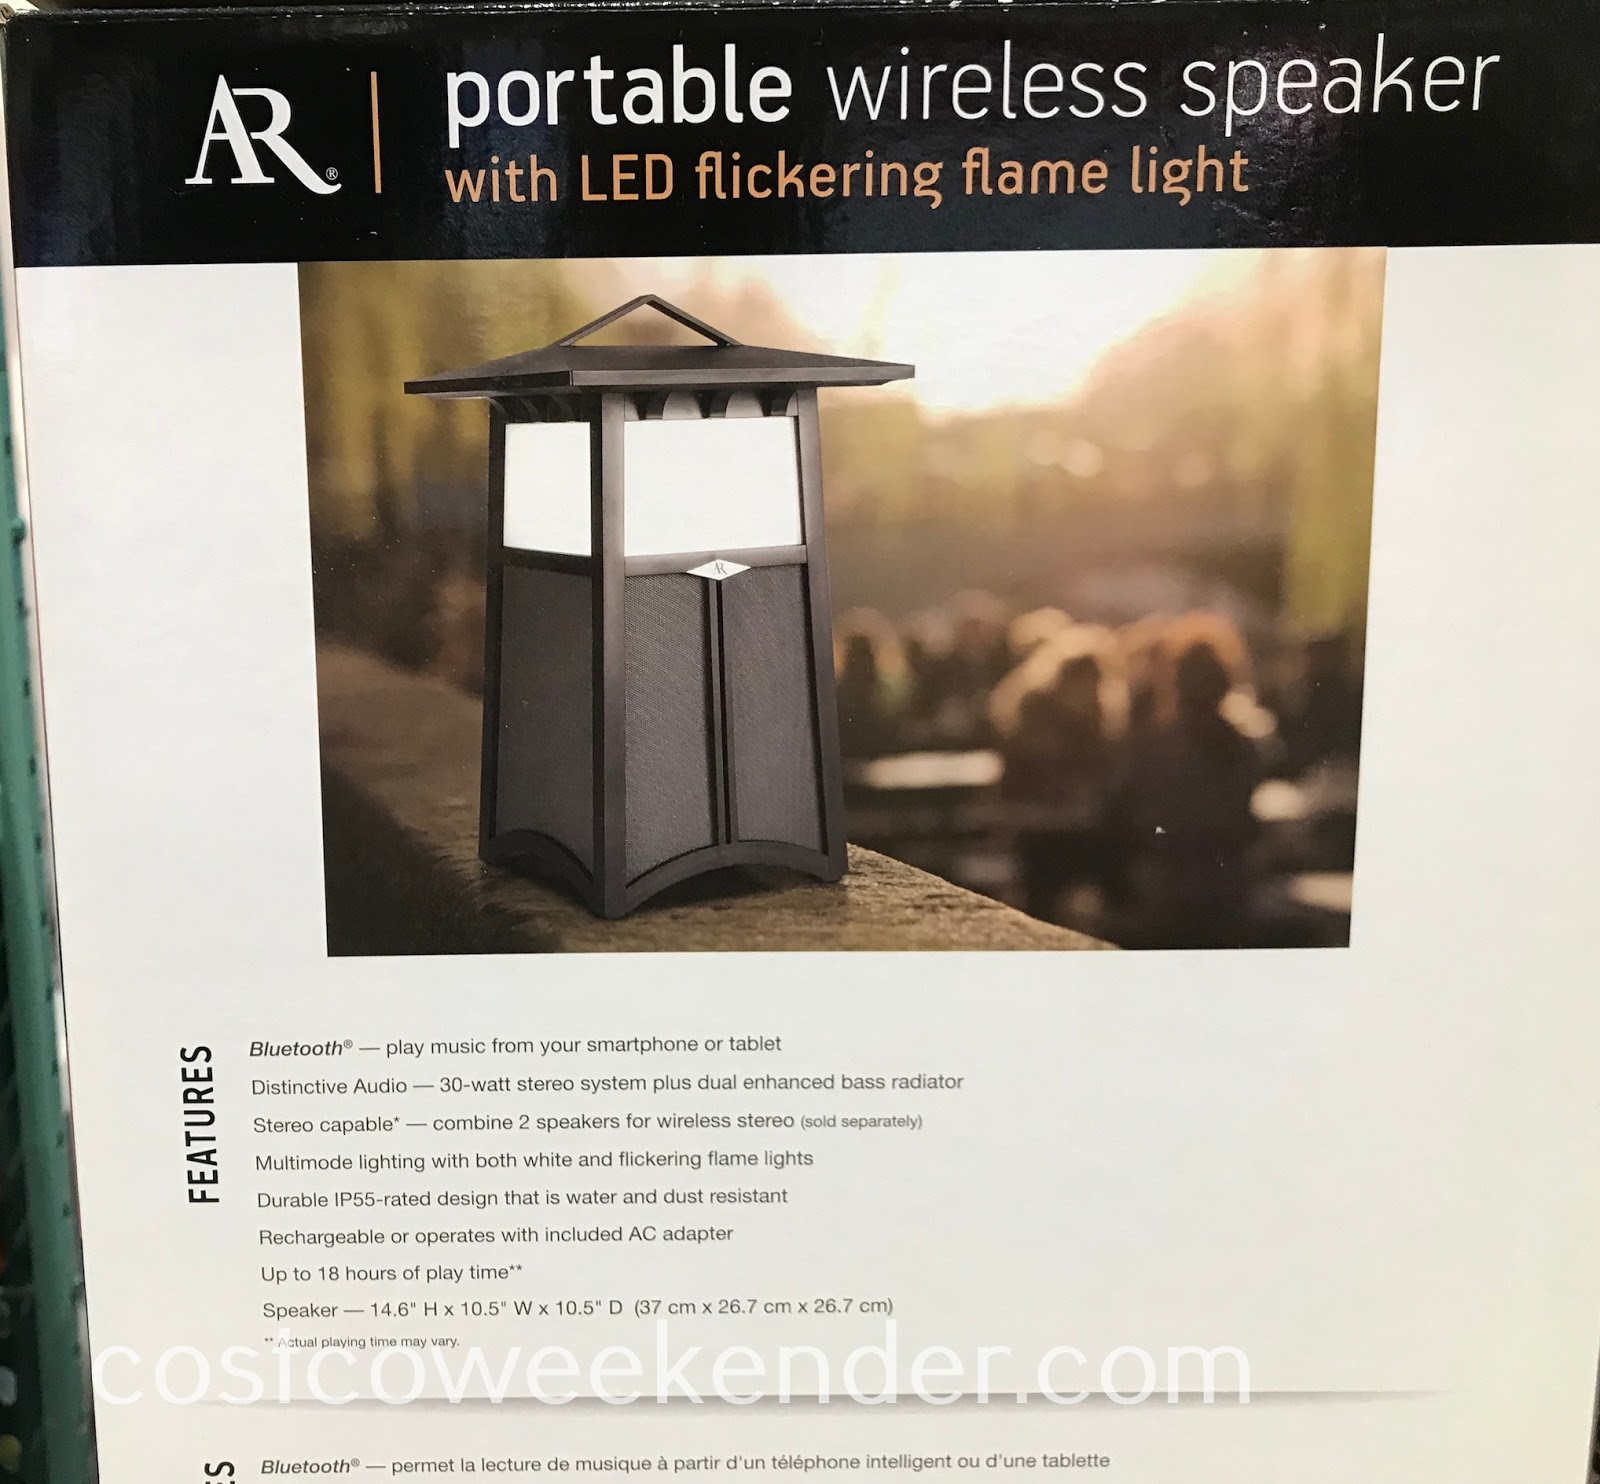 Acoustic Research Flame Outdoor Flame Speaker: great for outdoor gatherings and barbecues